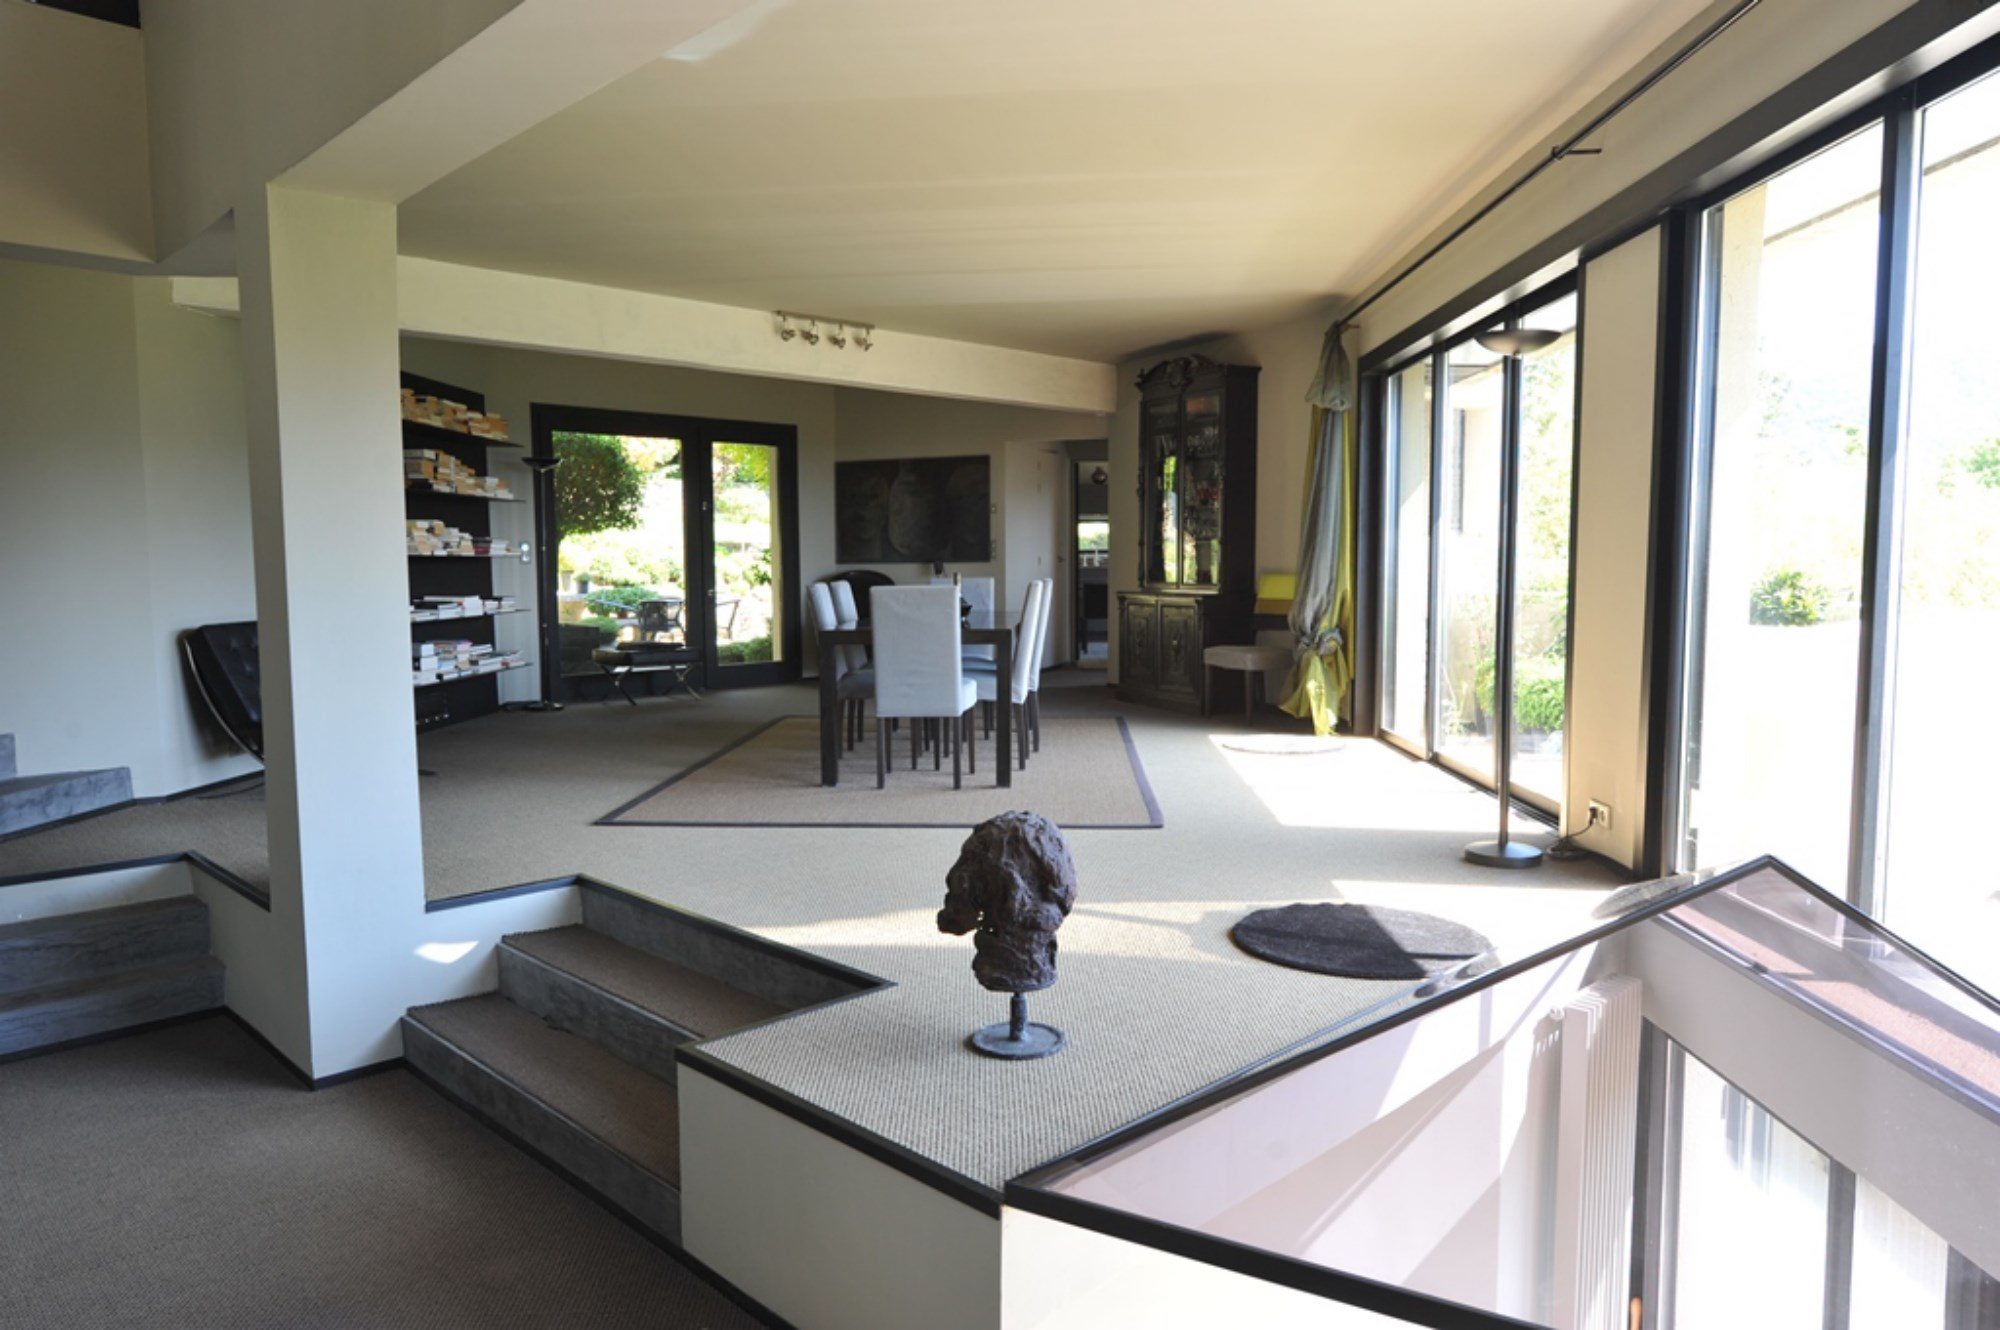 Ventes en vente en luberon maison contemporaine avec - Photos maison contemporaine ...